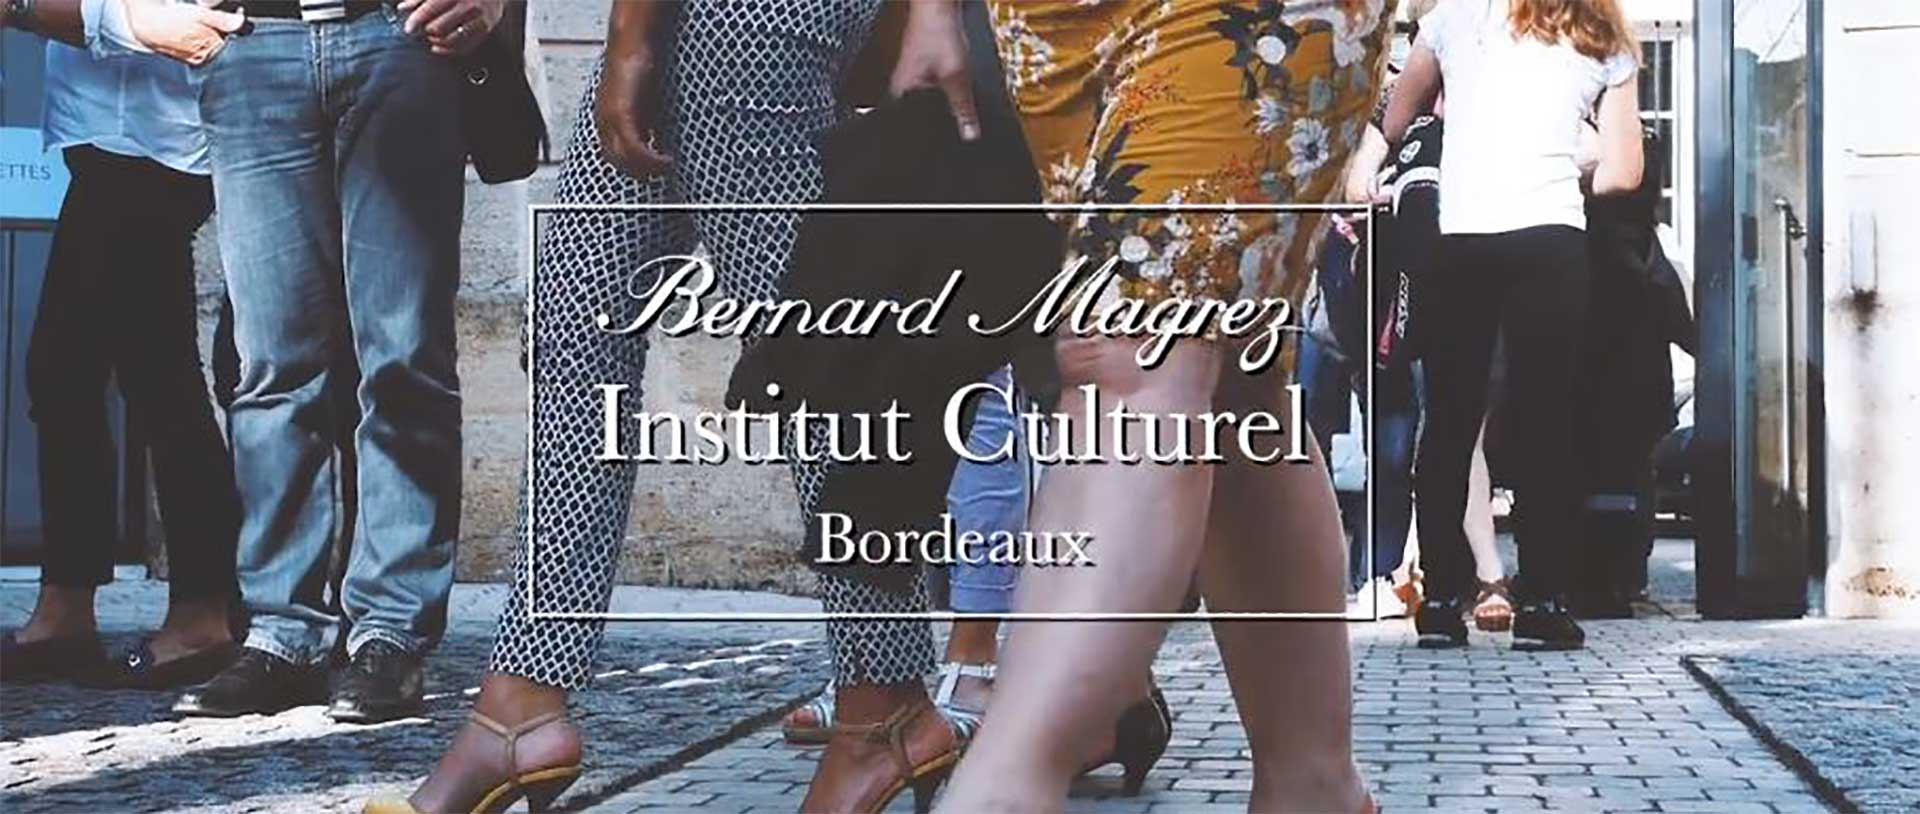 Bernard-Margrez-Street-Color-2 Exposition Urban Fever